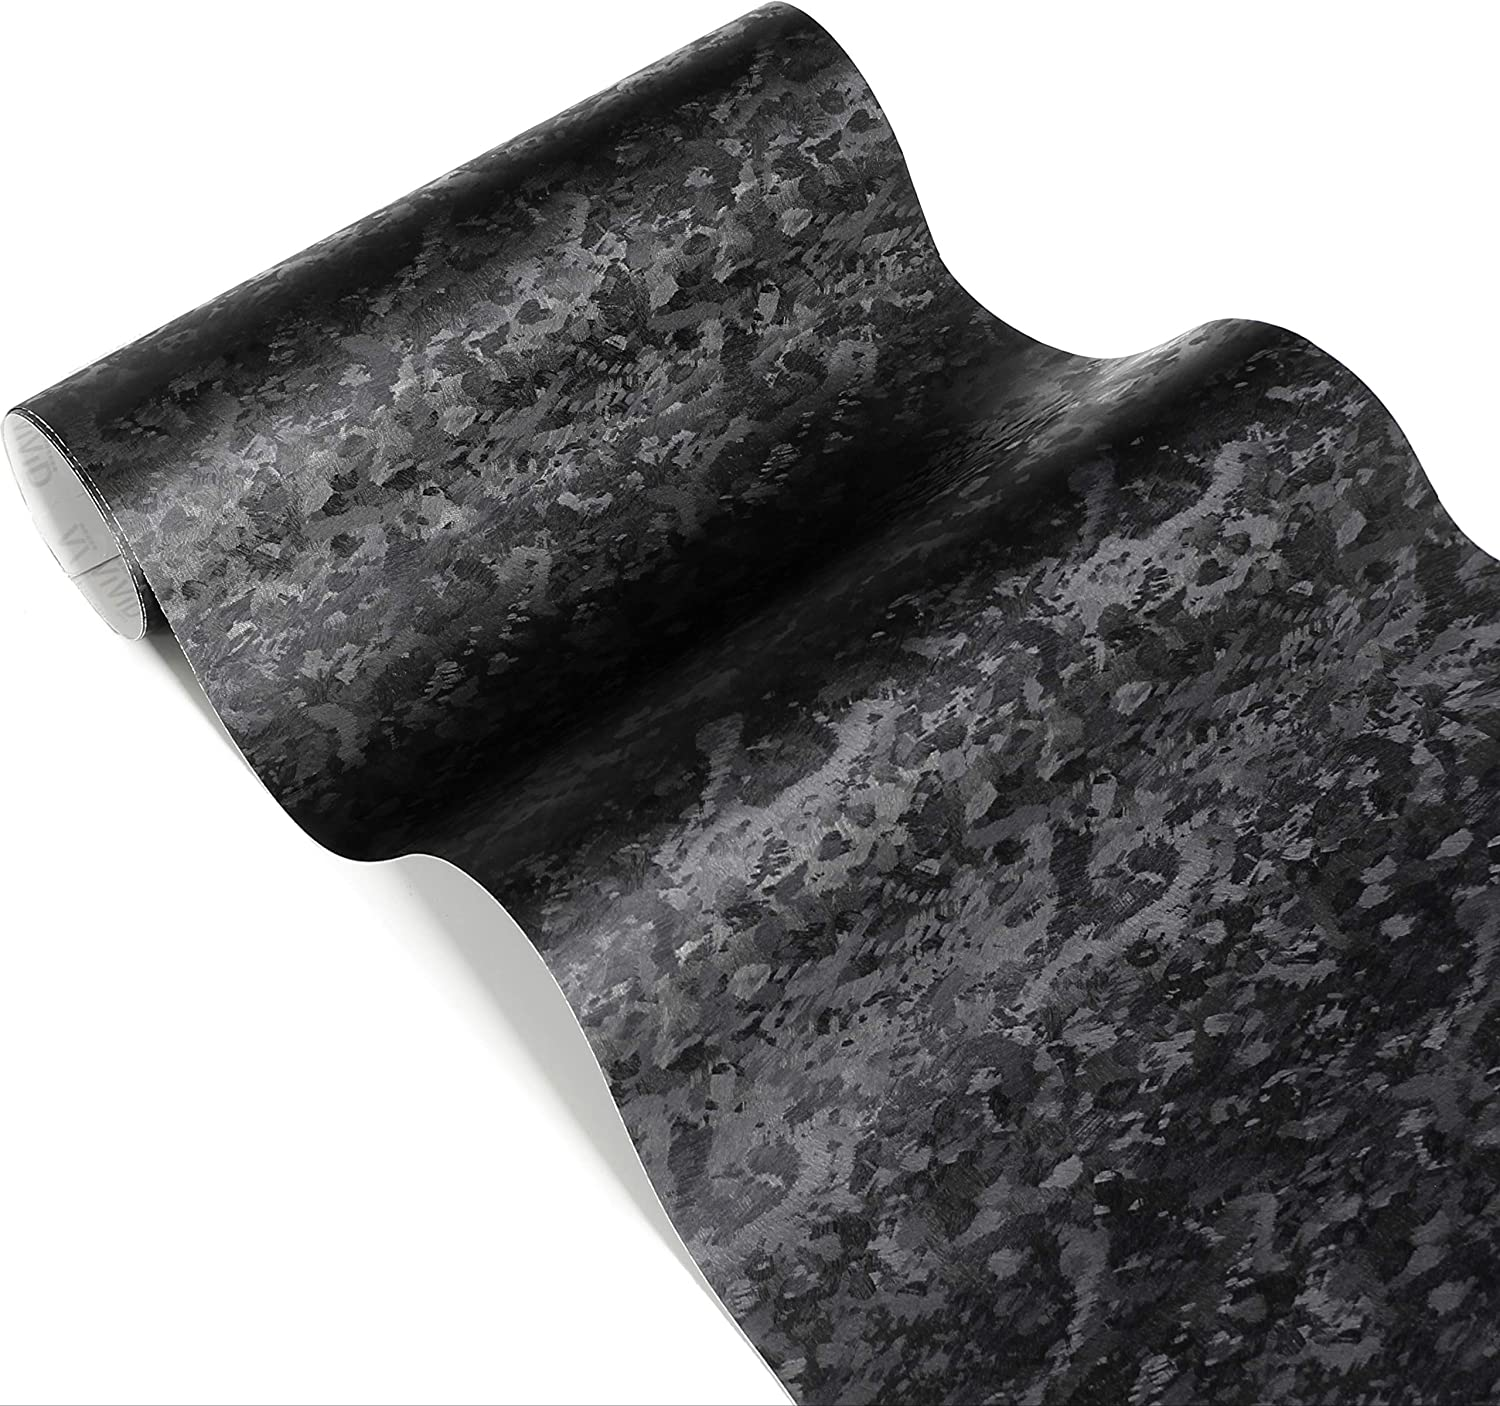 VViViD Black Forged Carbon Fiber Vinyl Wrap Roll with Air Release Technology (1/2 Foot by 5 Foot)